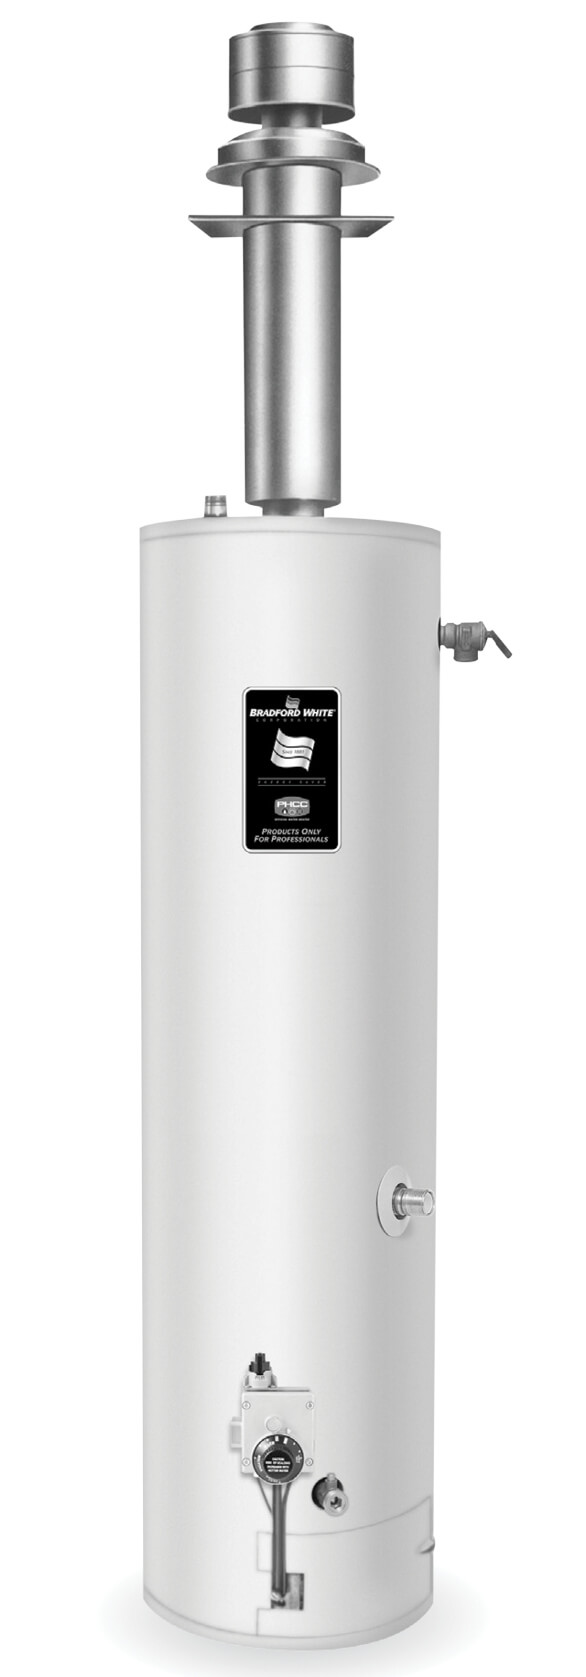 Sealed Combustion Water Heater : sealed, combustion, water, heater, BRADFORD, WHITE, Sealed, Combustion, Water, Heaters, (Direct, Vent)